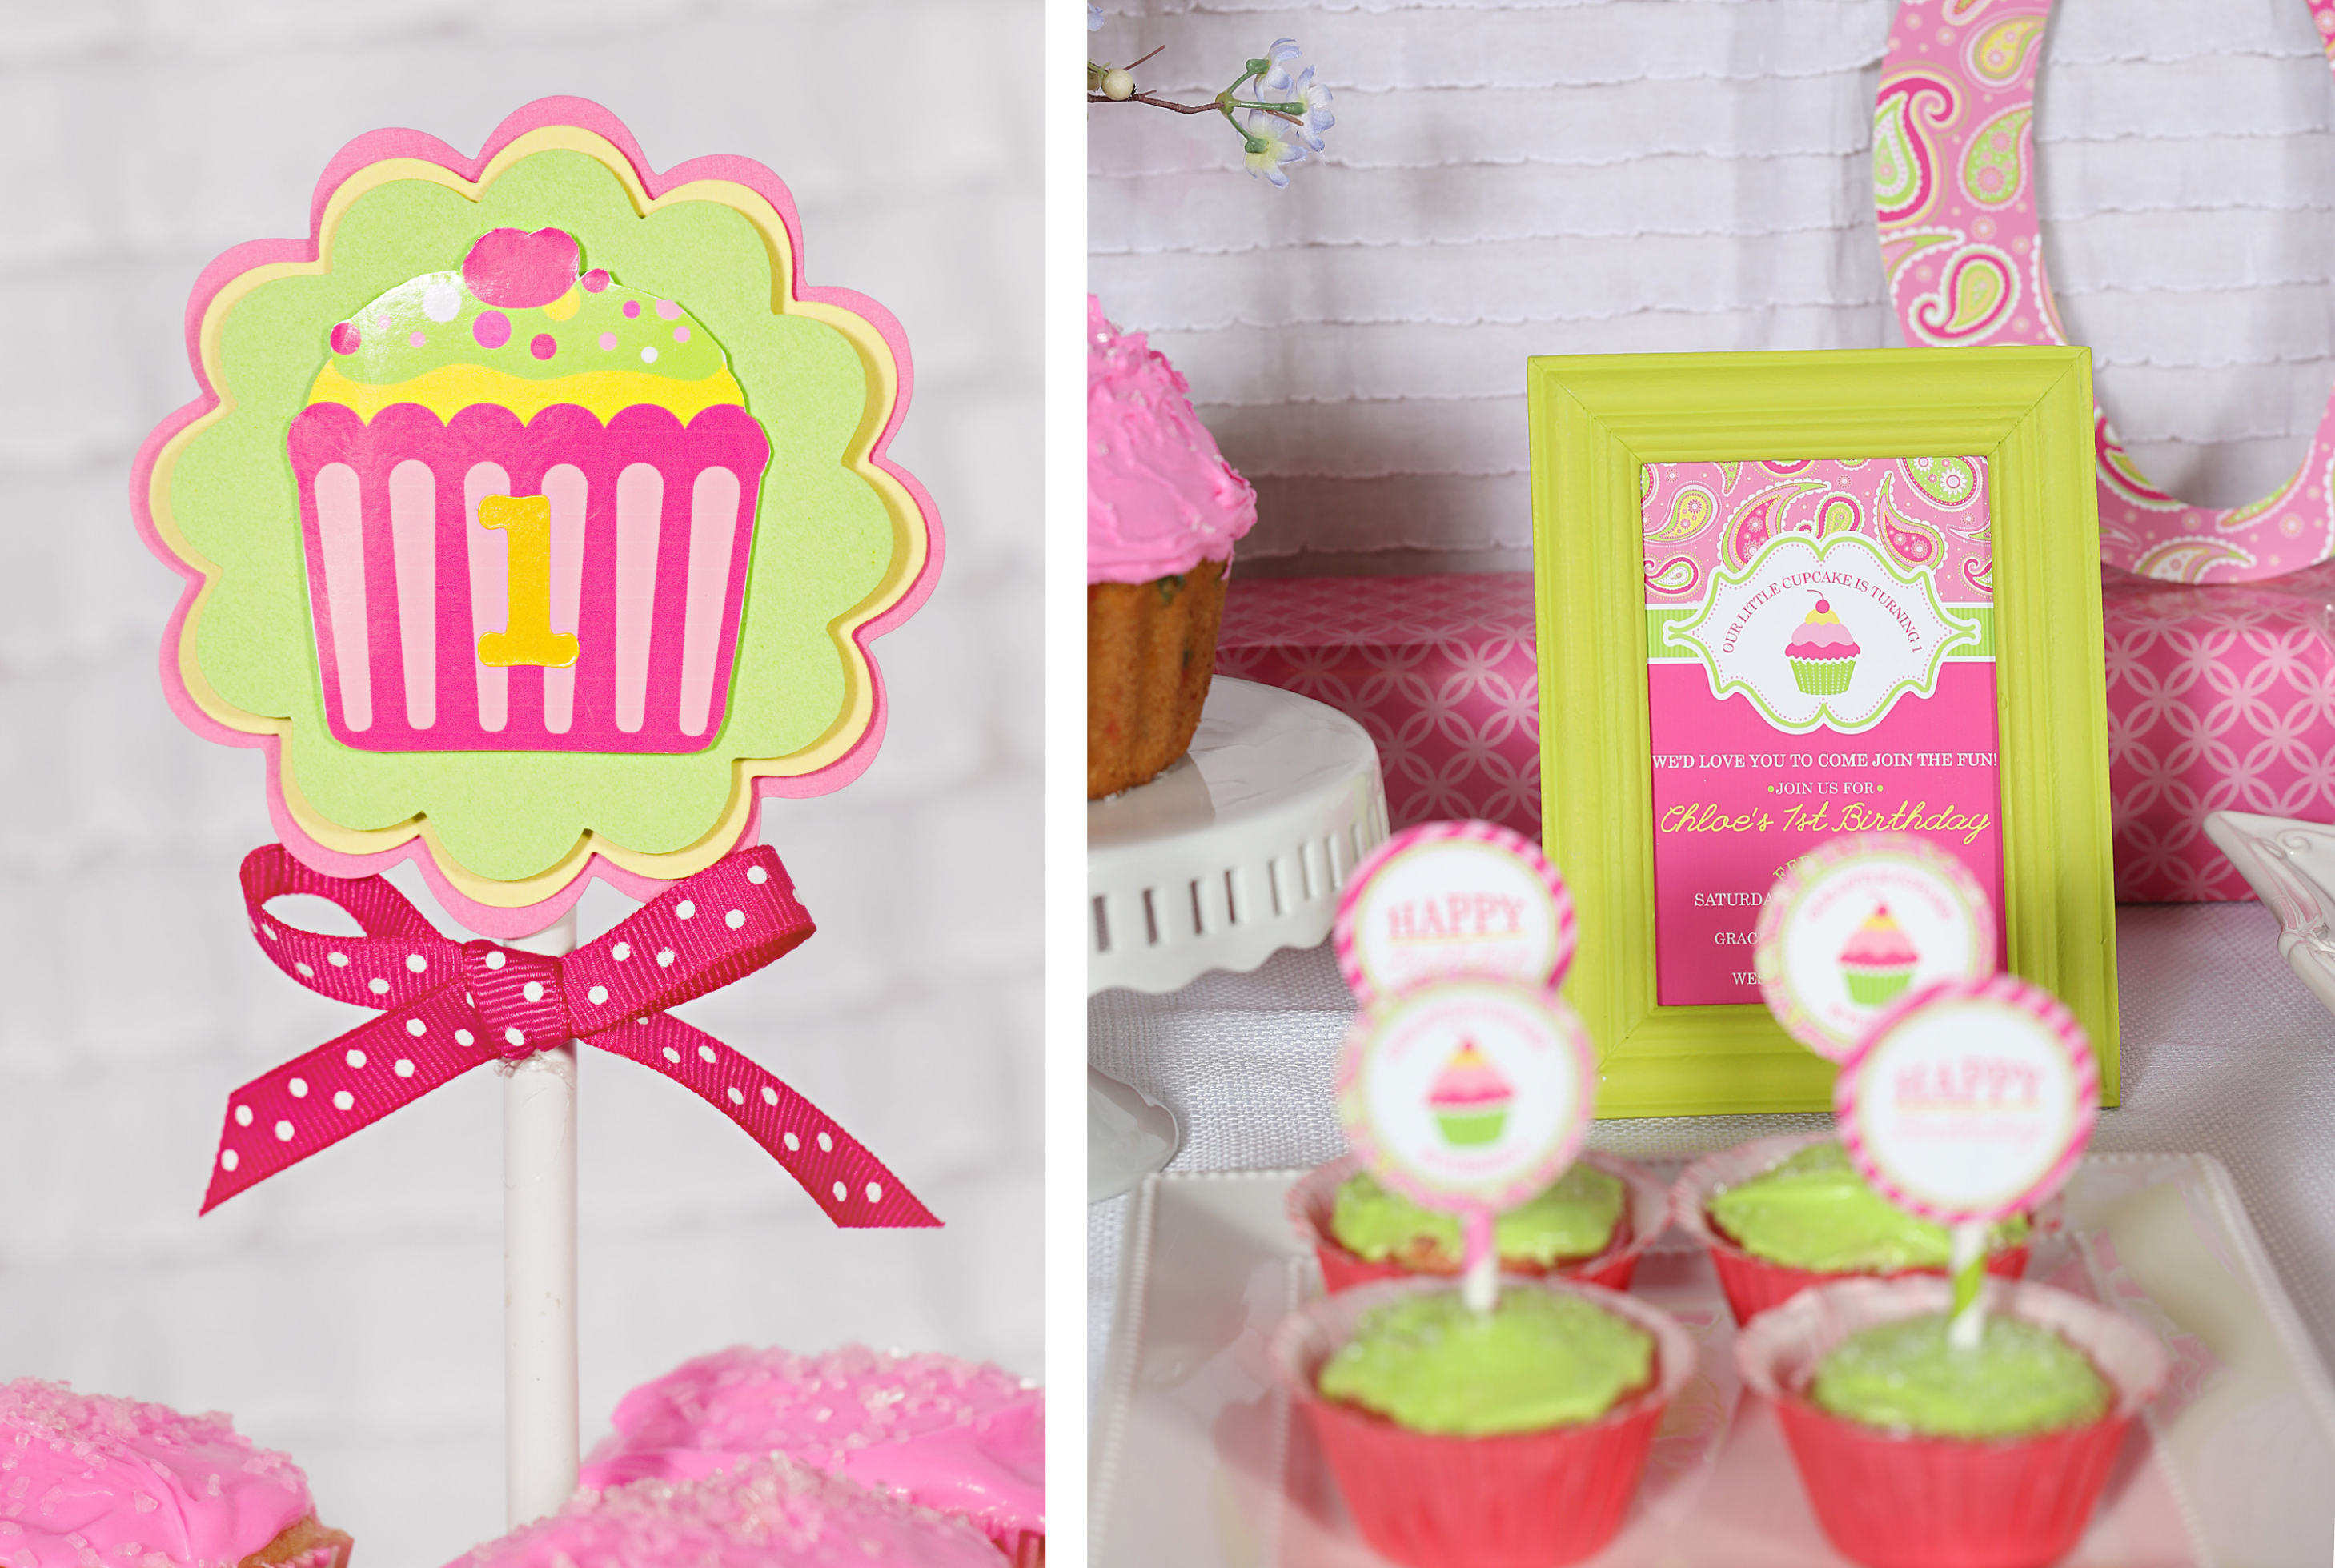 paisley-cupcakes-party-10